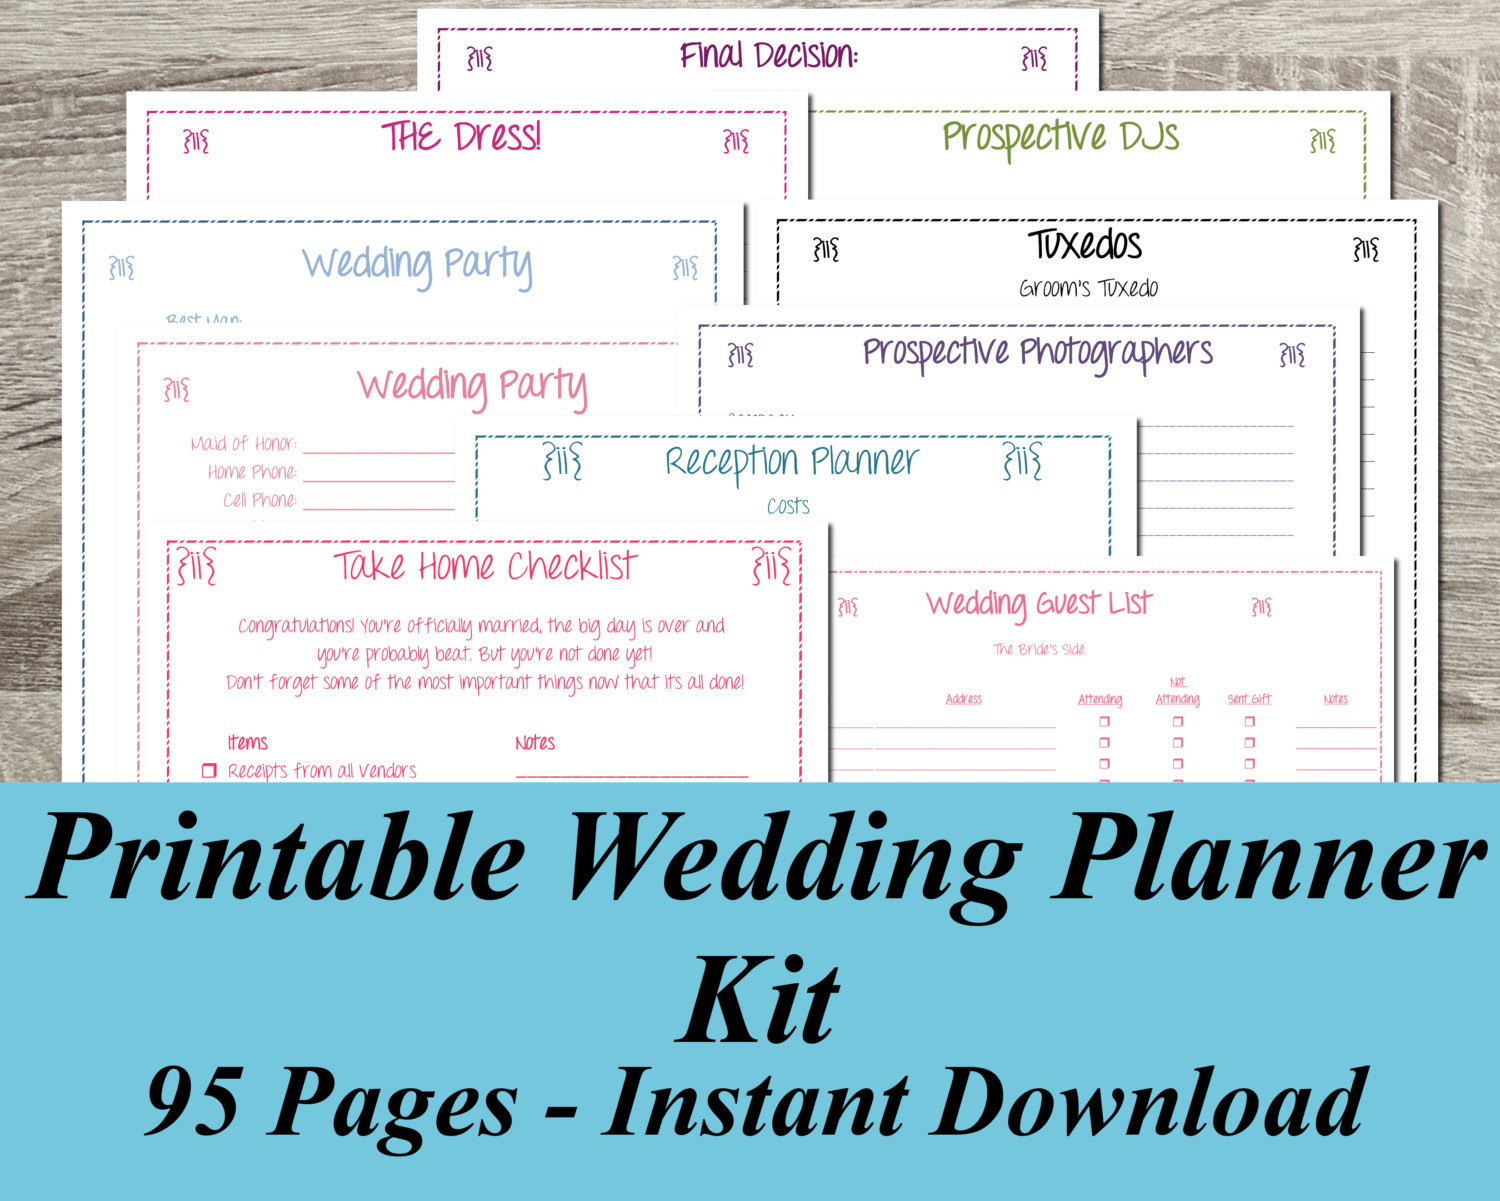 Gorgeous Free Wedding Planning Book 7 Free Printable Wedding Planner - Free Printable Wedding Planner Forms